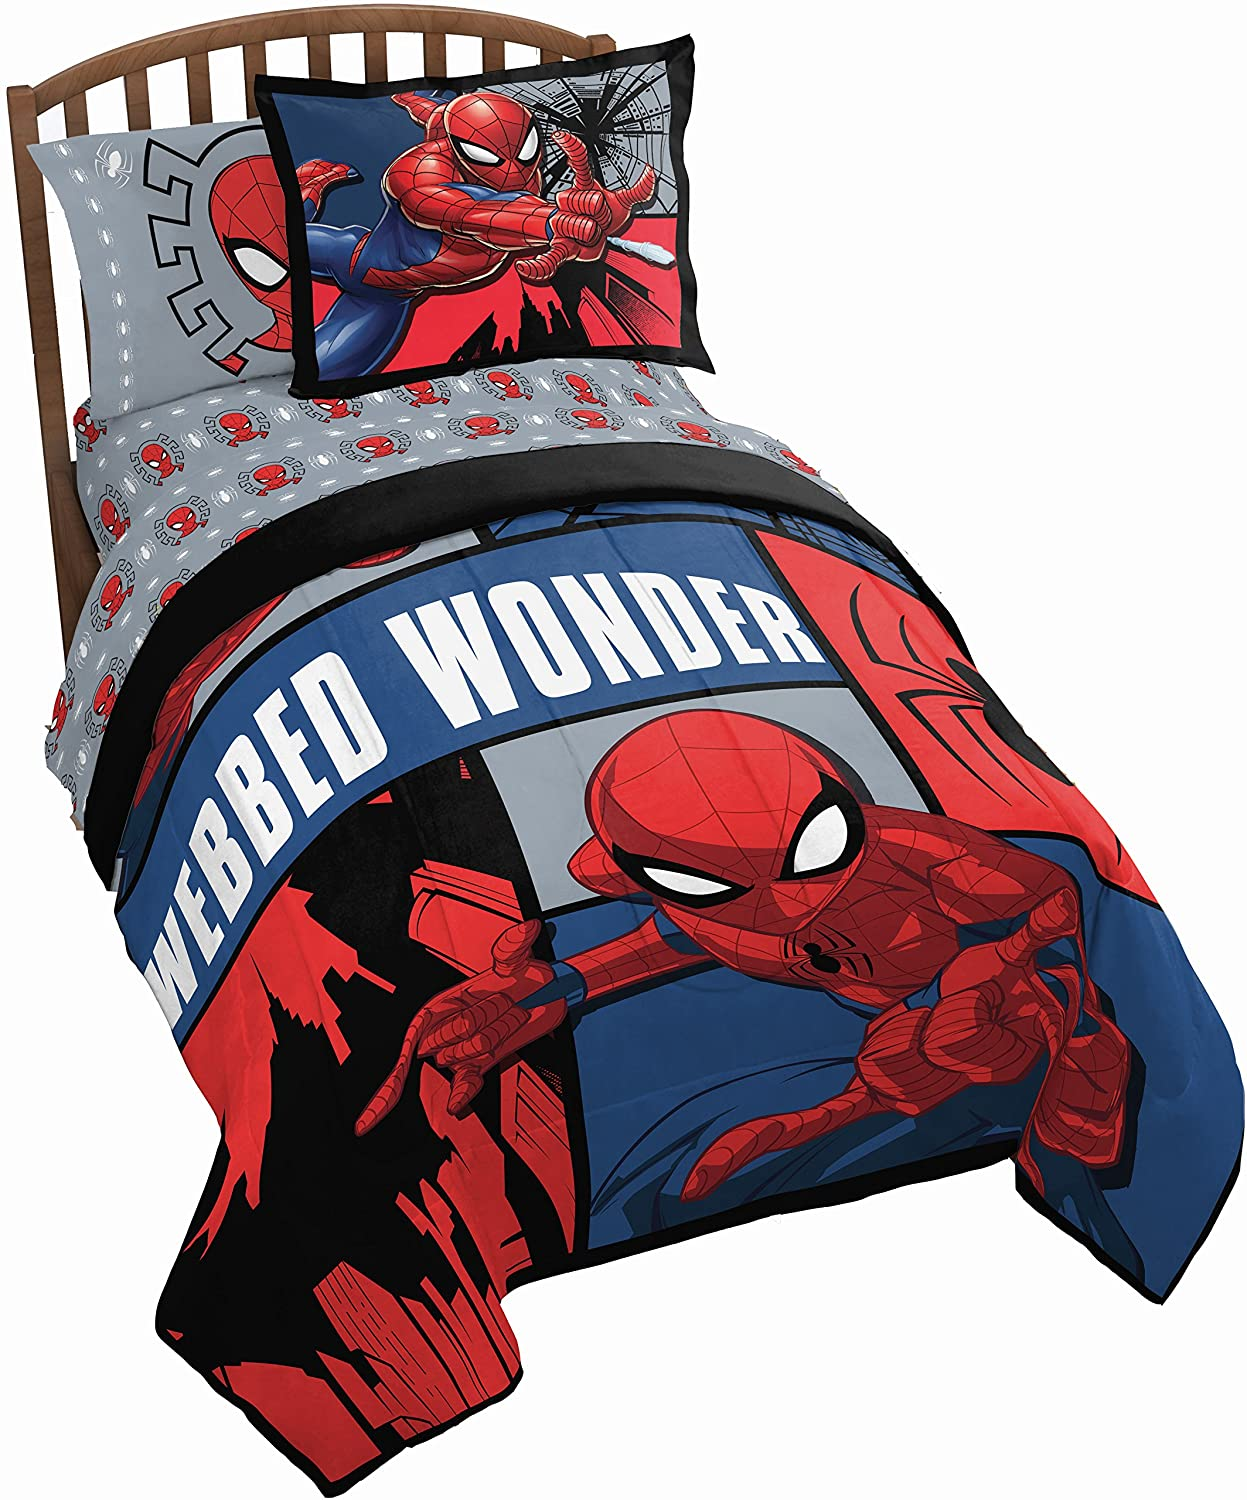 Jay Franco Marvel Spiderman Webbed Wonder Twin Comforter - Super Soft Kids Reversible Bedding Includes Bonus Sham - Fade Resistant Polyester Microfiber Fill (Official Marvel Product)